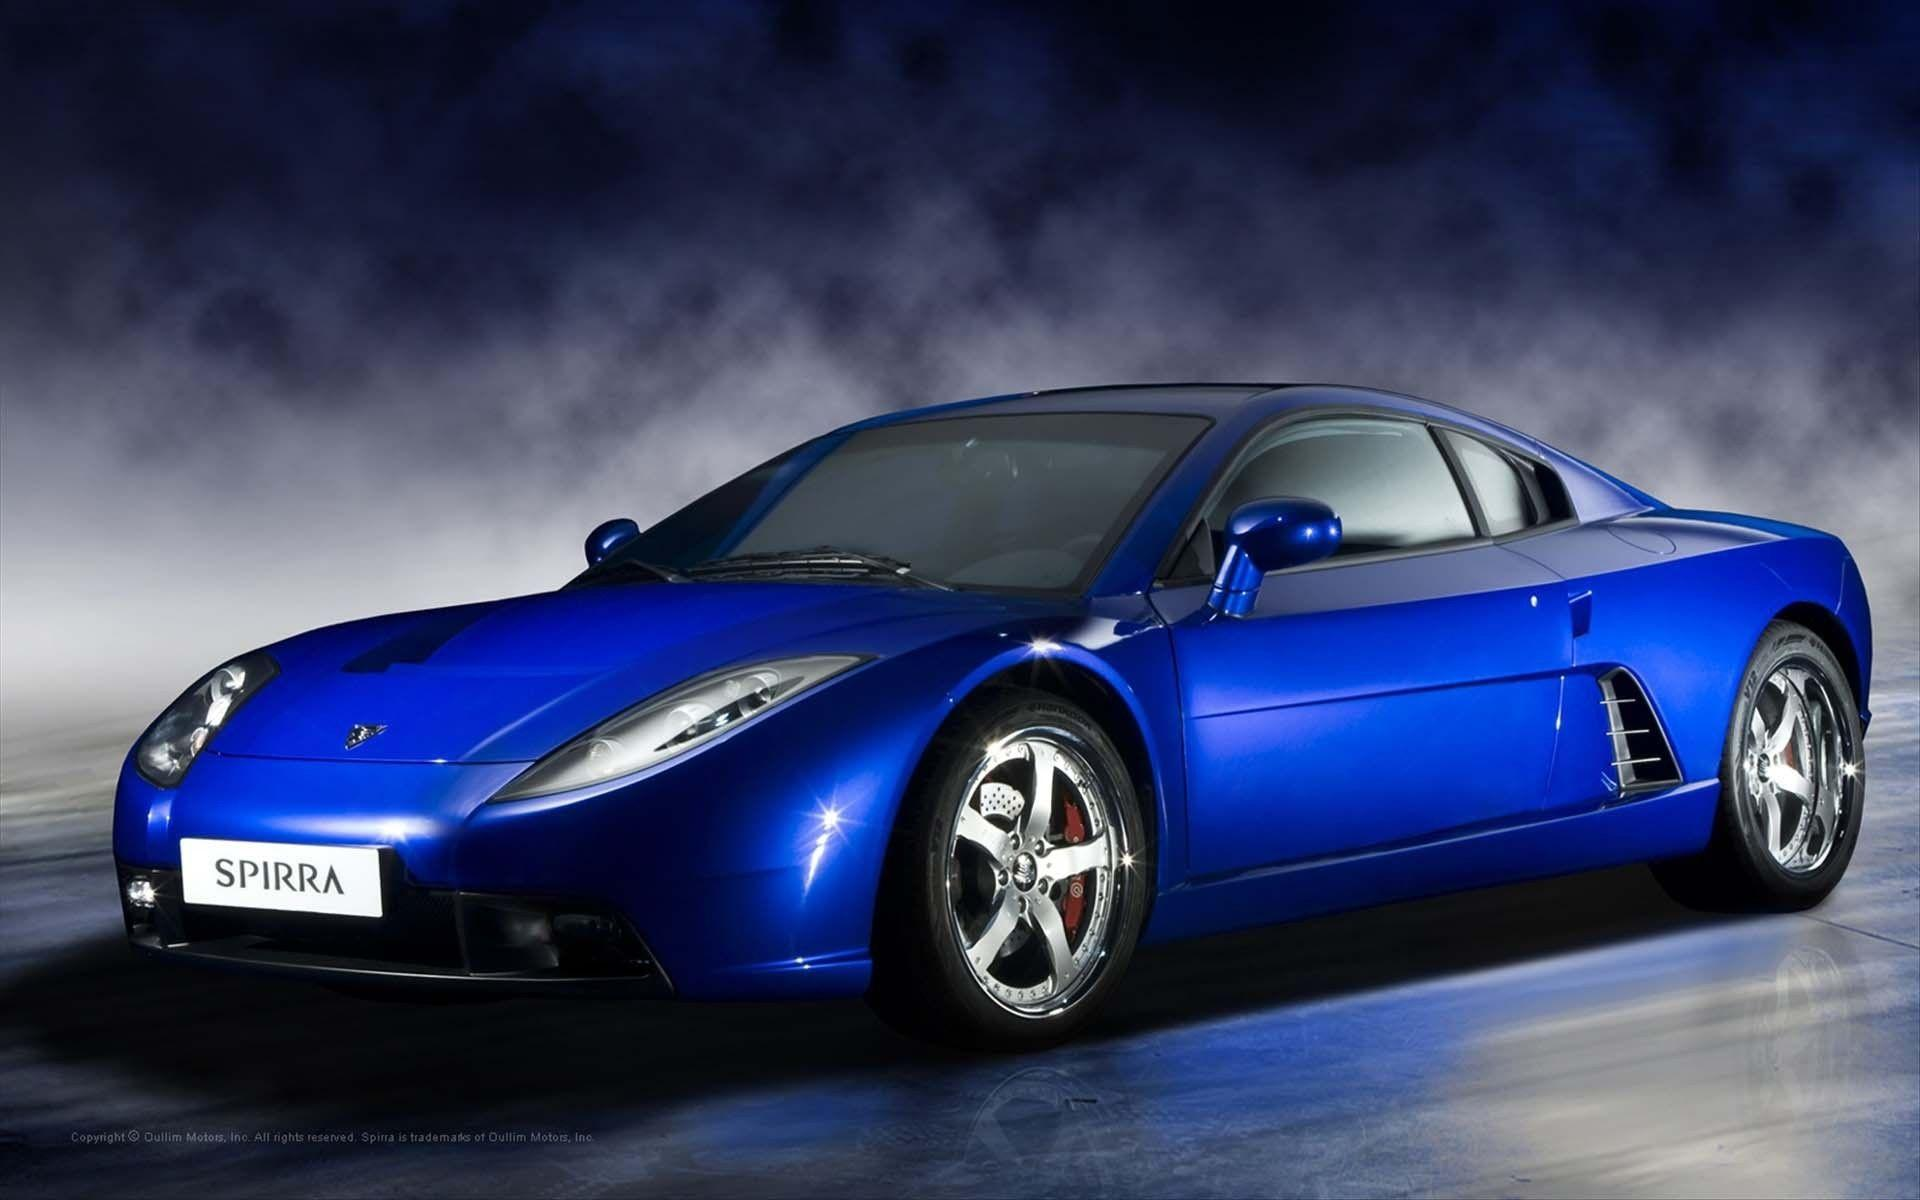 wallpapers spirra cars background supercar desktop 1920 korean ready south concept wallpapercave hdcarwallpapers wide